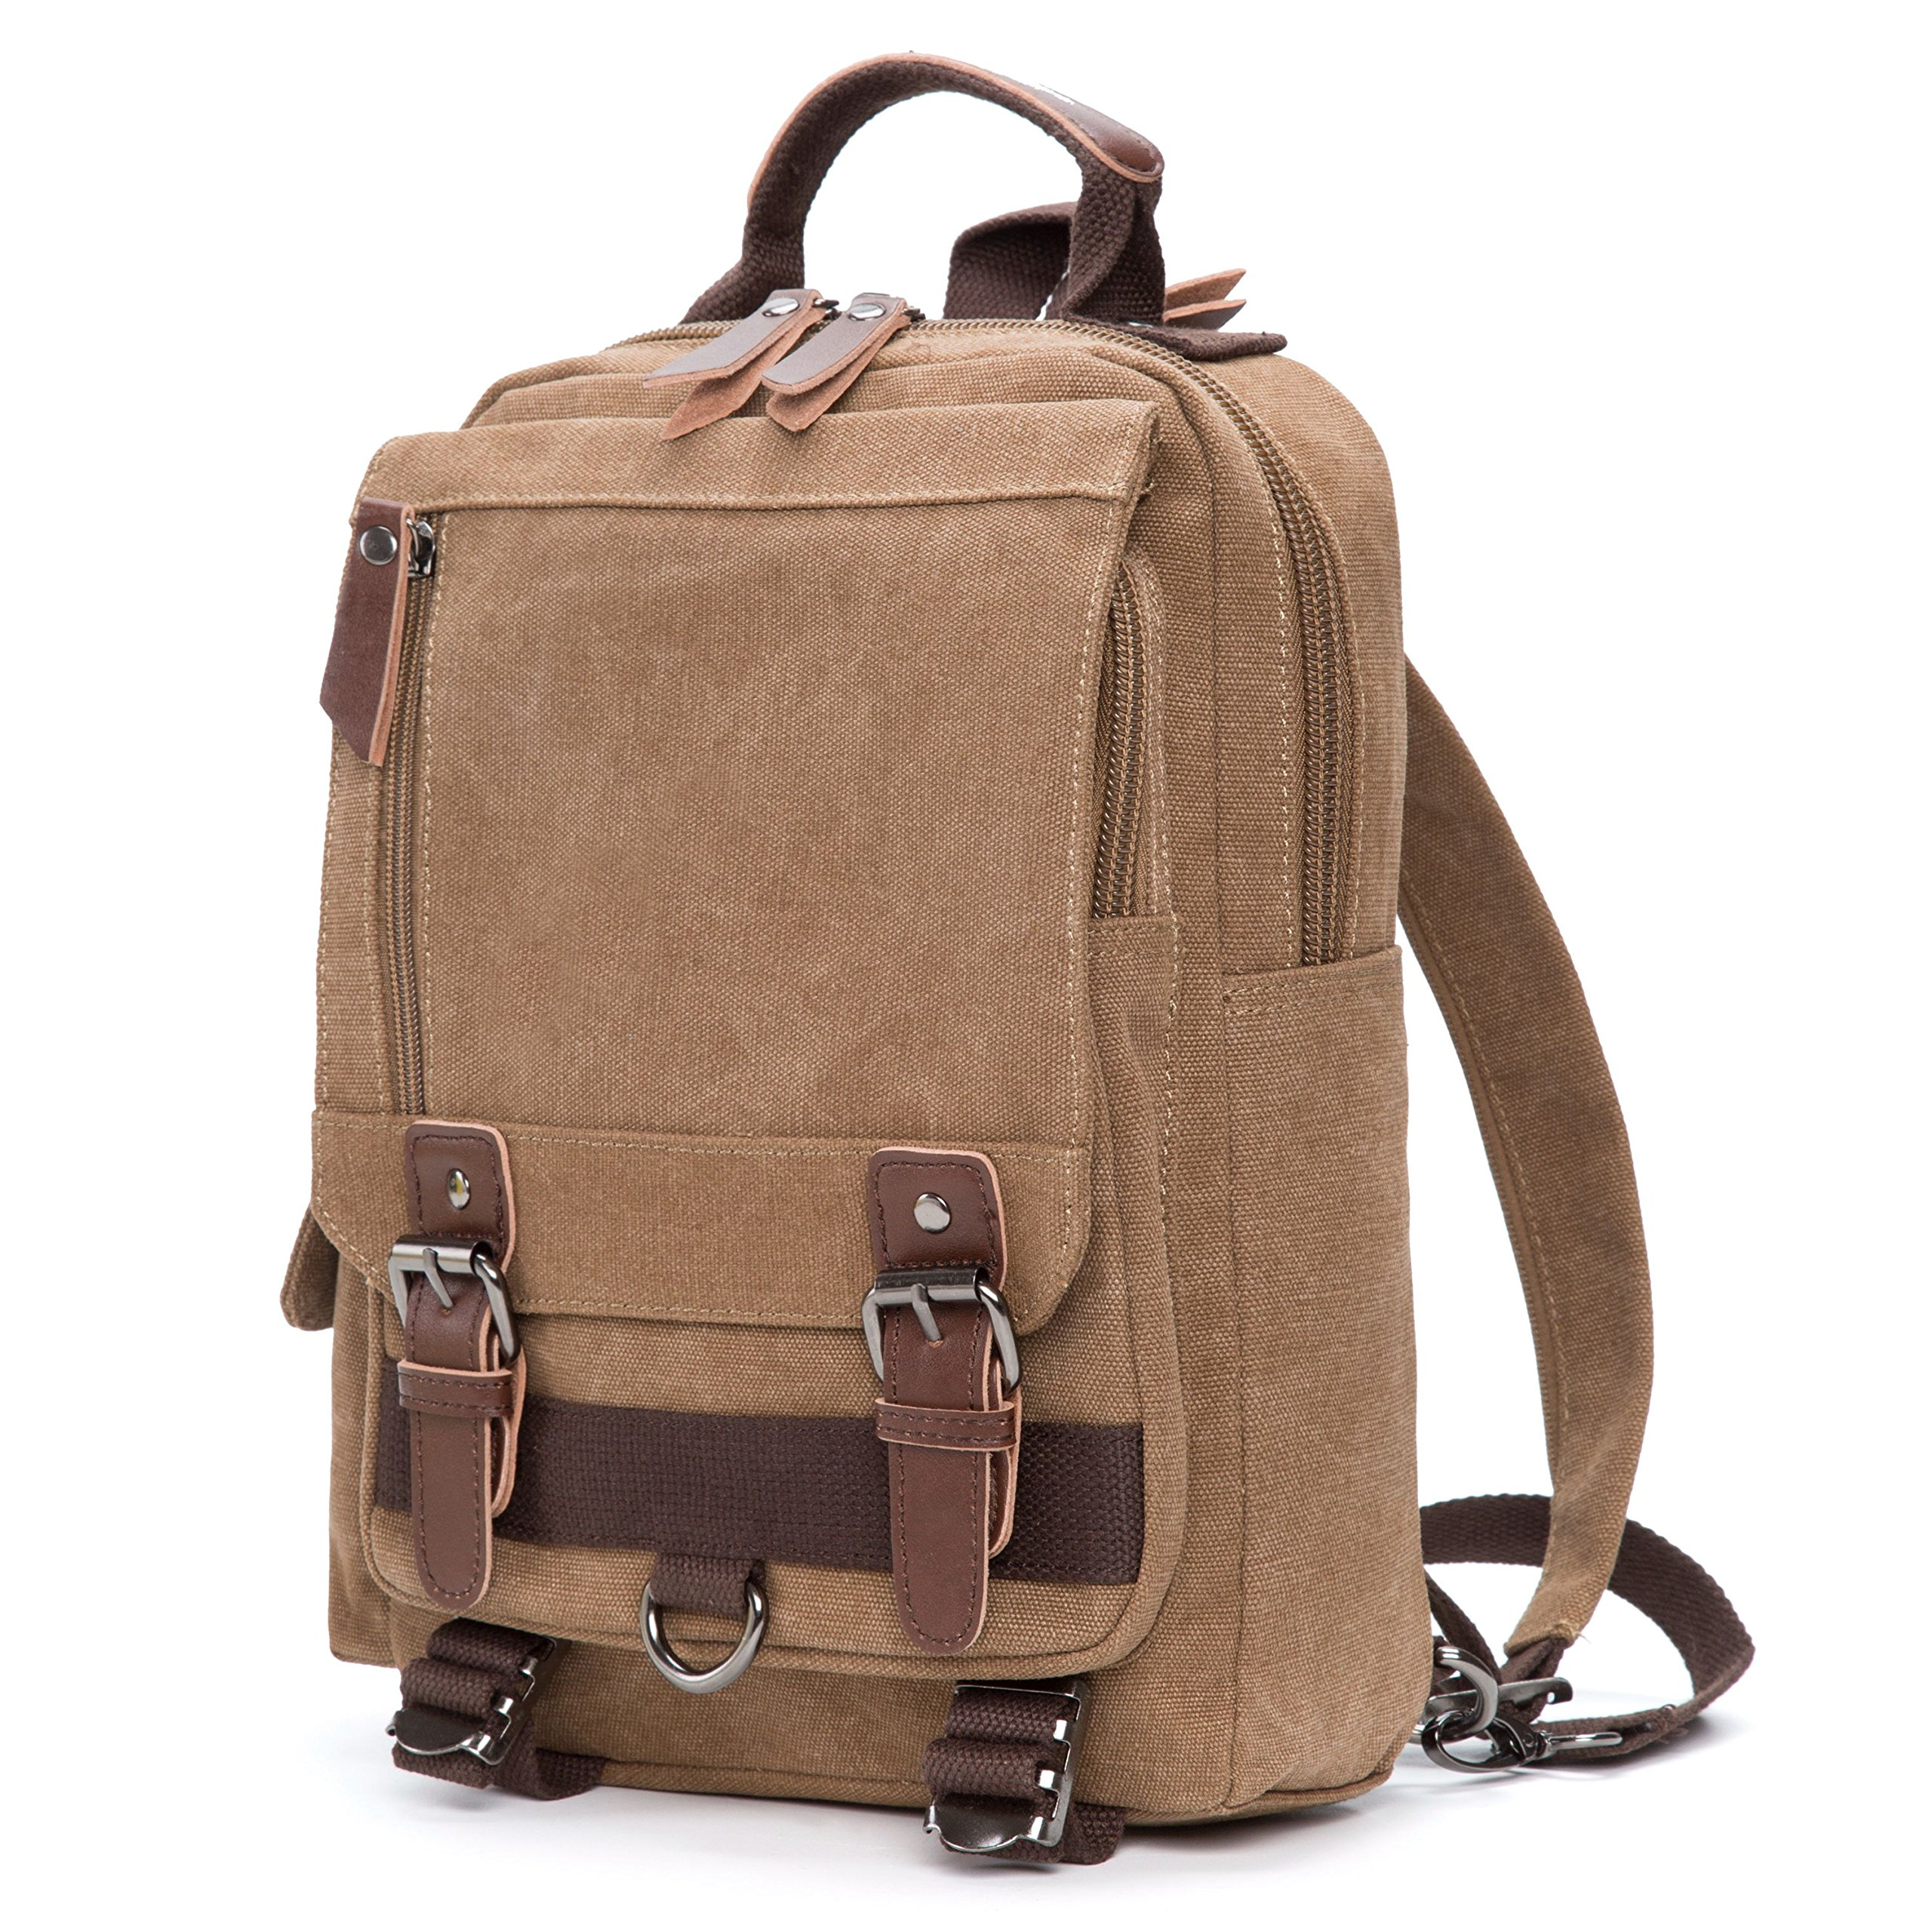 Small Canvas Rucksack Unisex Vintage Backpack Convertible Sling Messenger Bag for Men/Women (Coffee)